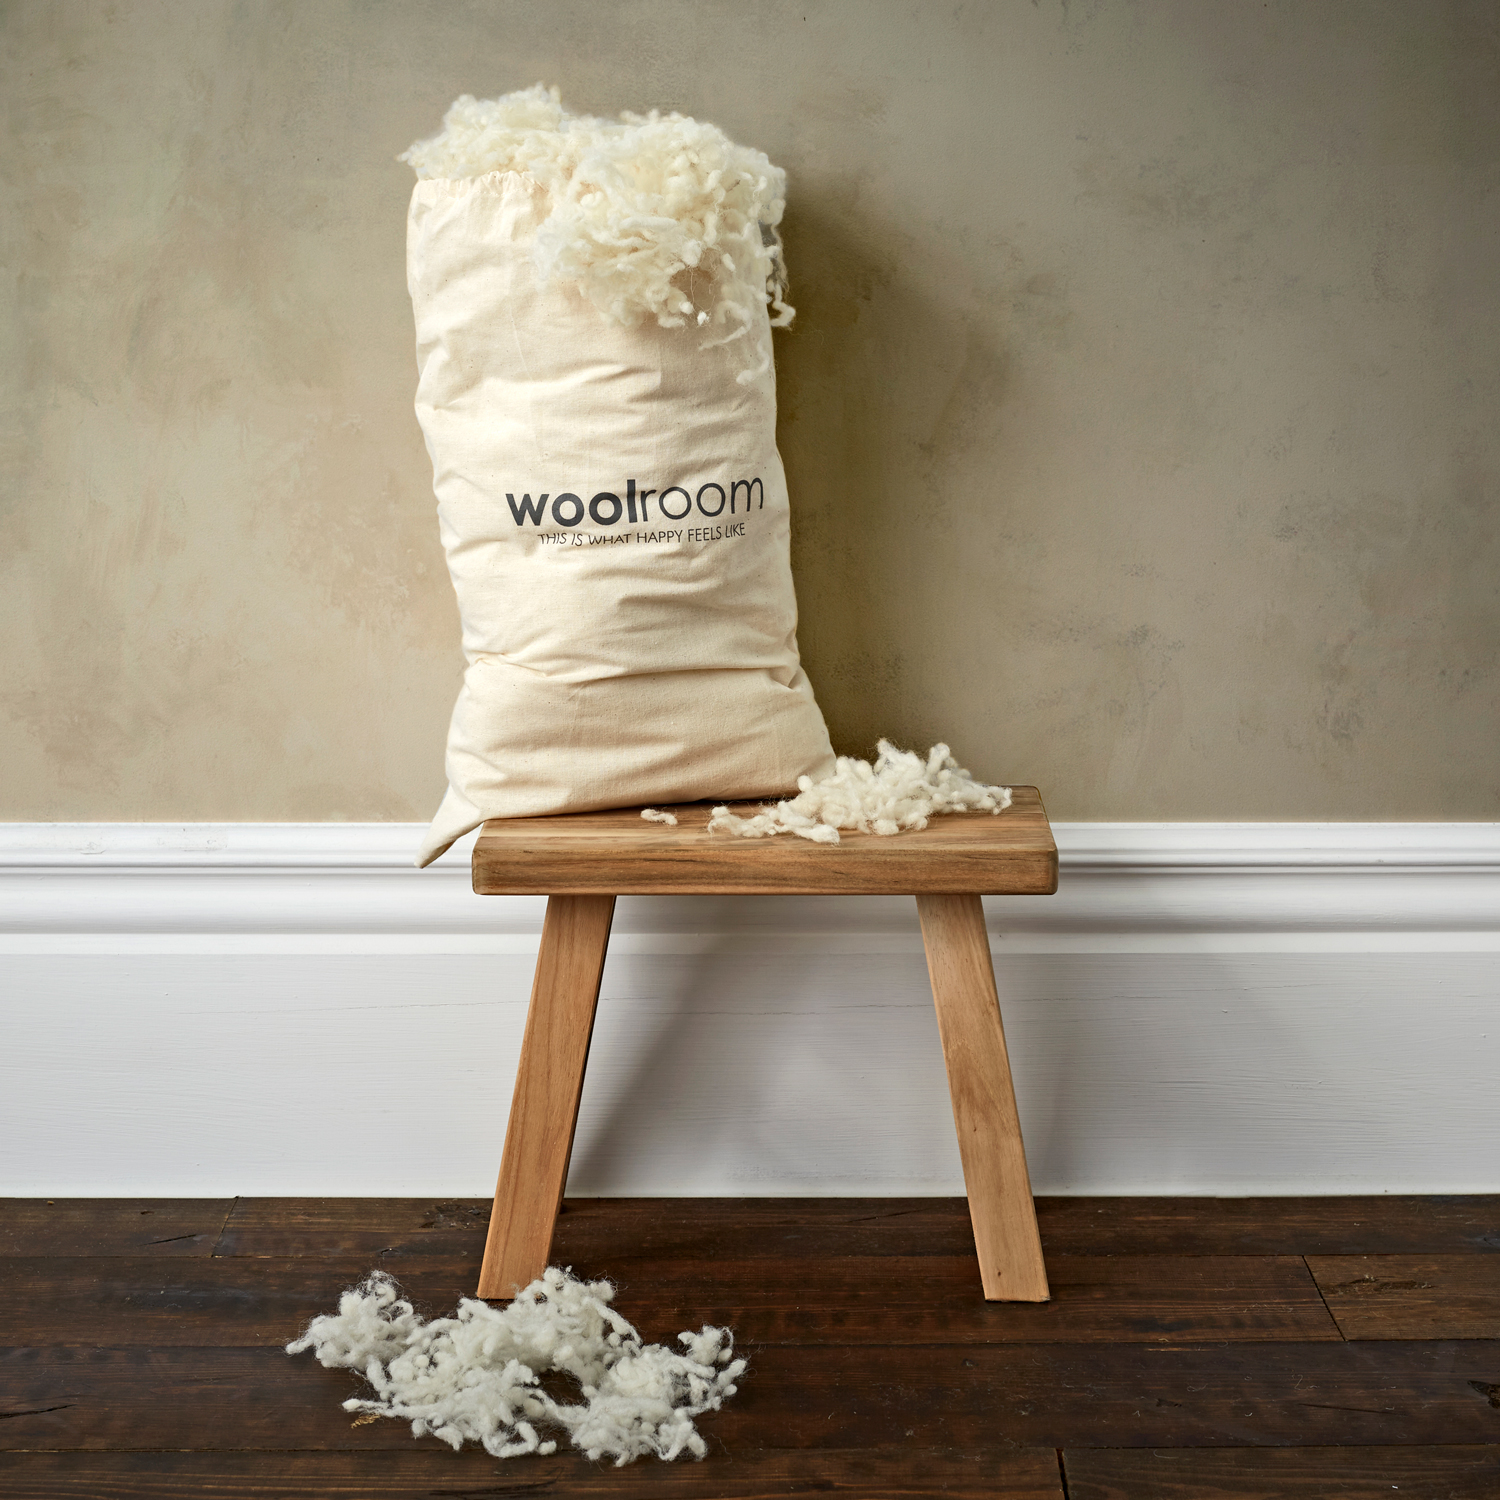 Extra Wool for Deluxe Pillows | woolroom